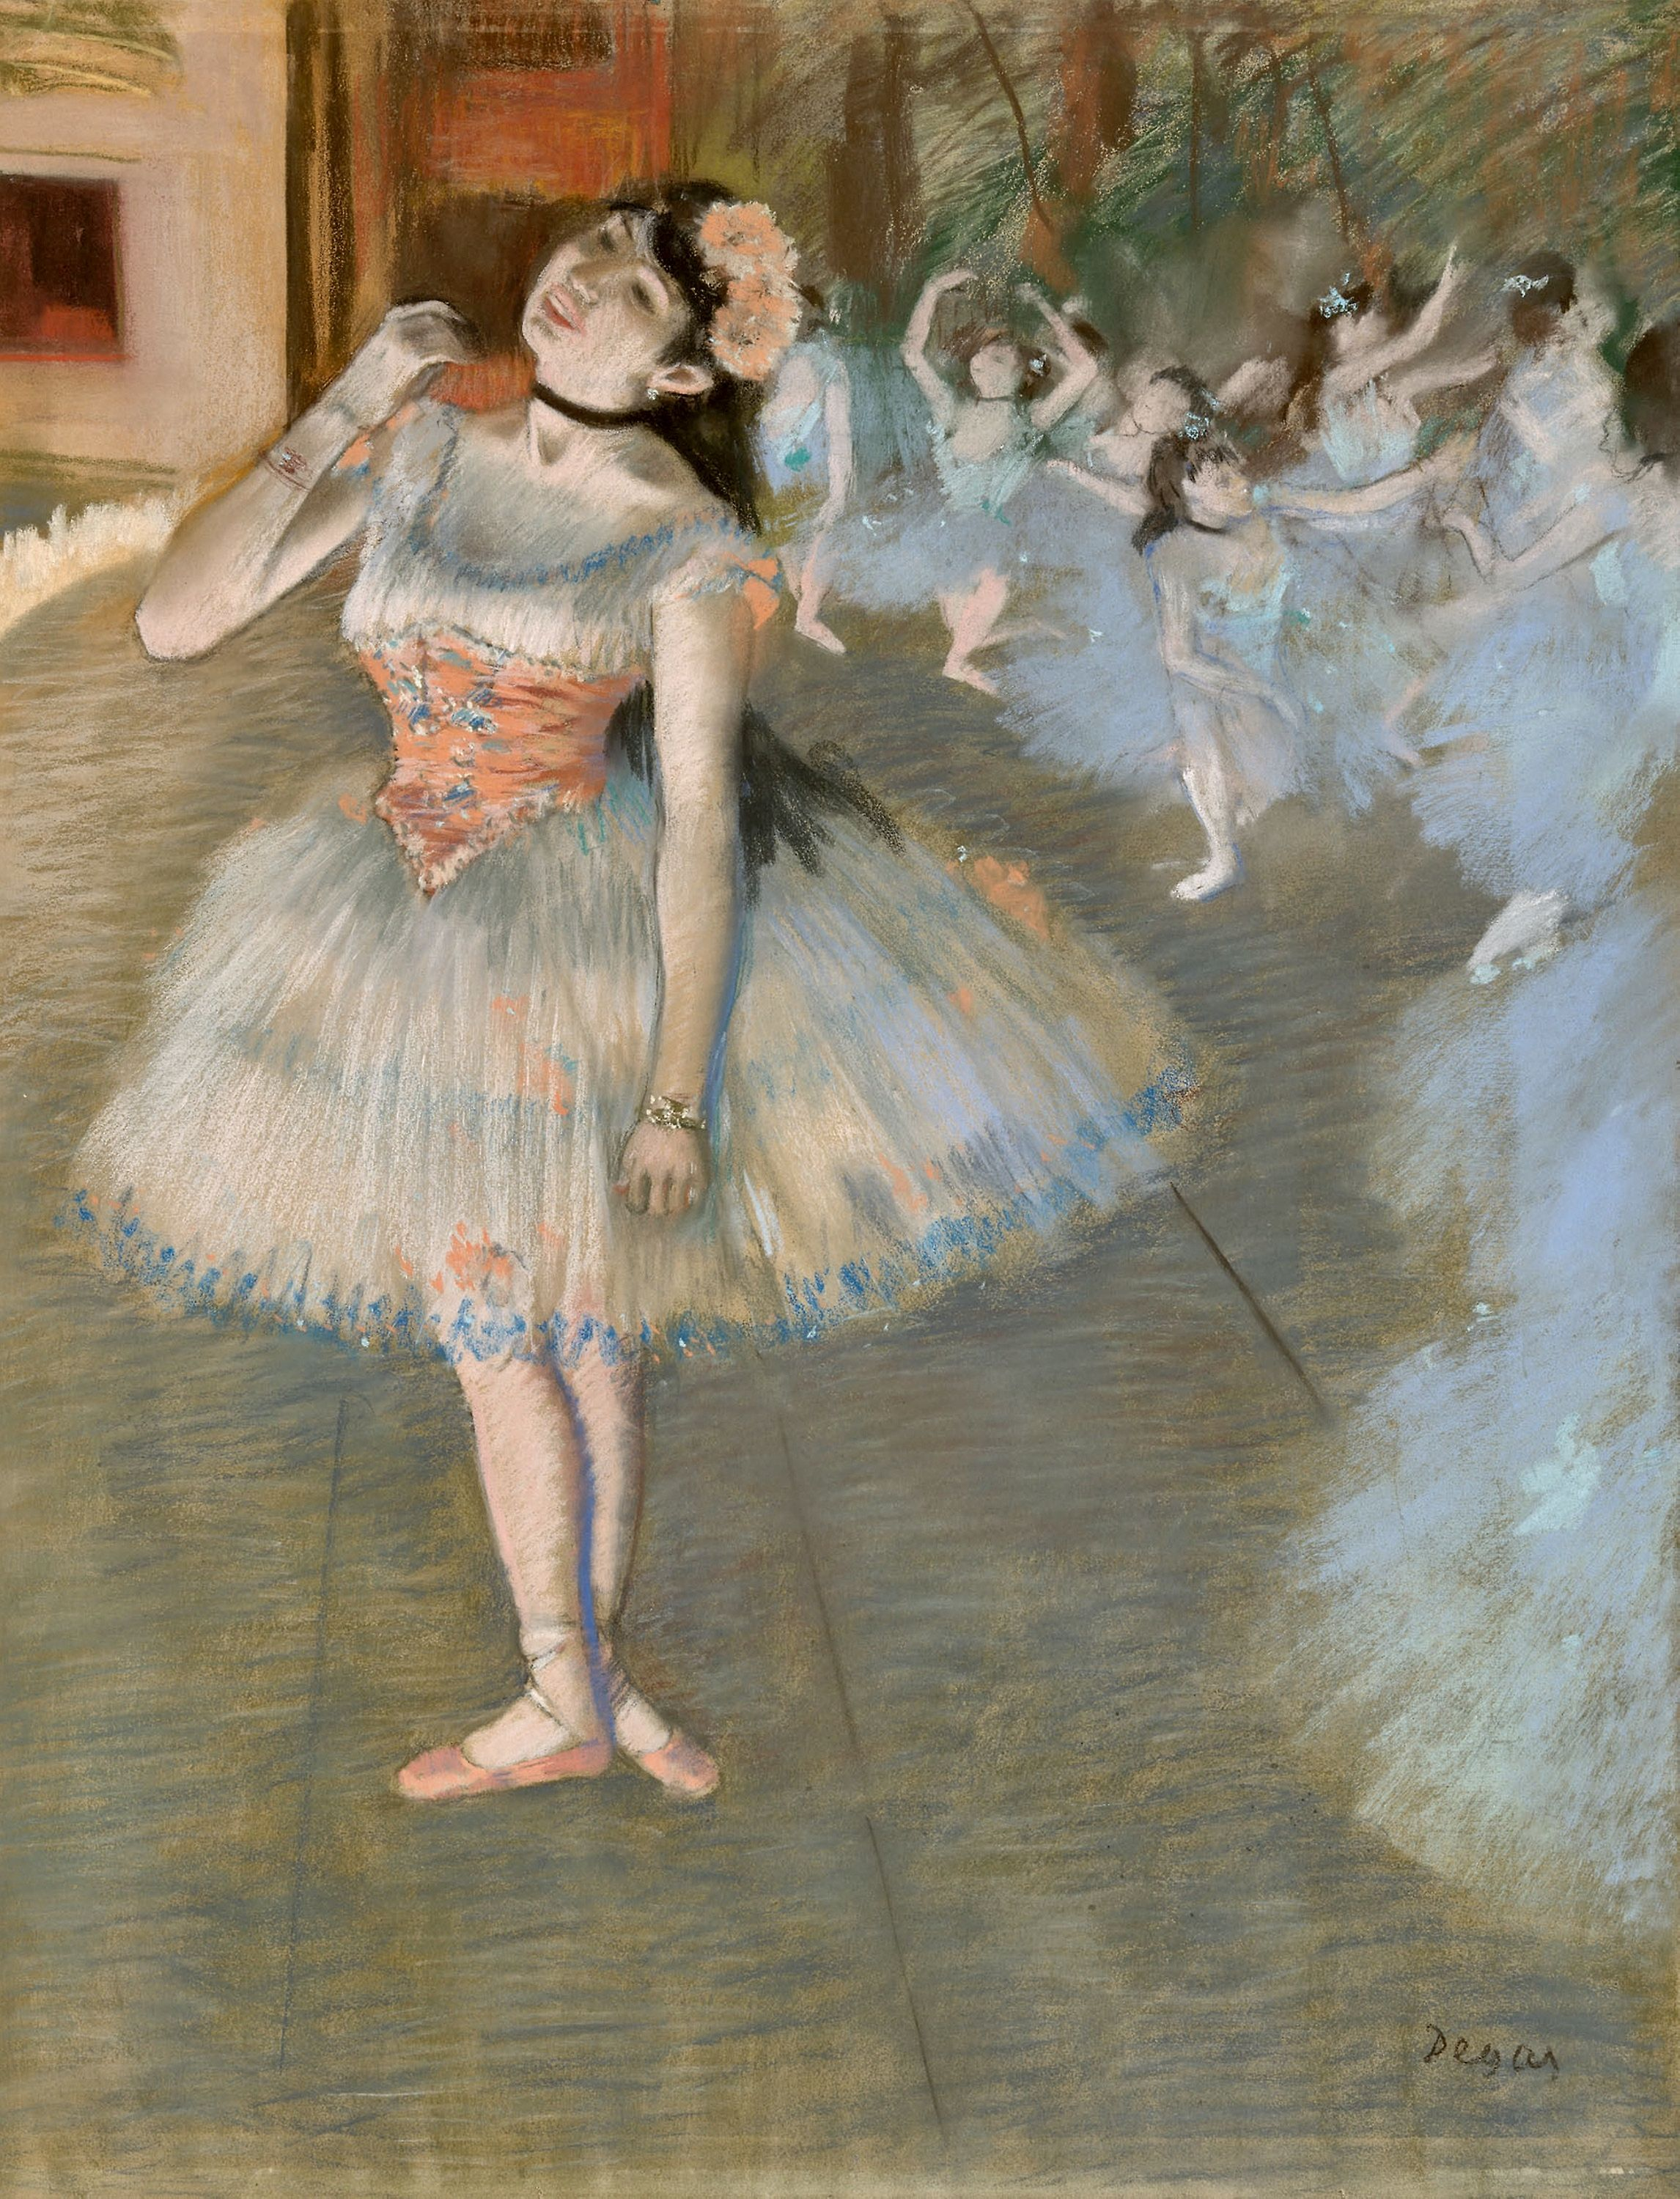 The Star The Art Institute Of Chicago In 2020 Edgar Degas Art Degas Paintings Edgar Degas